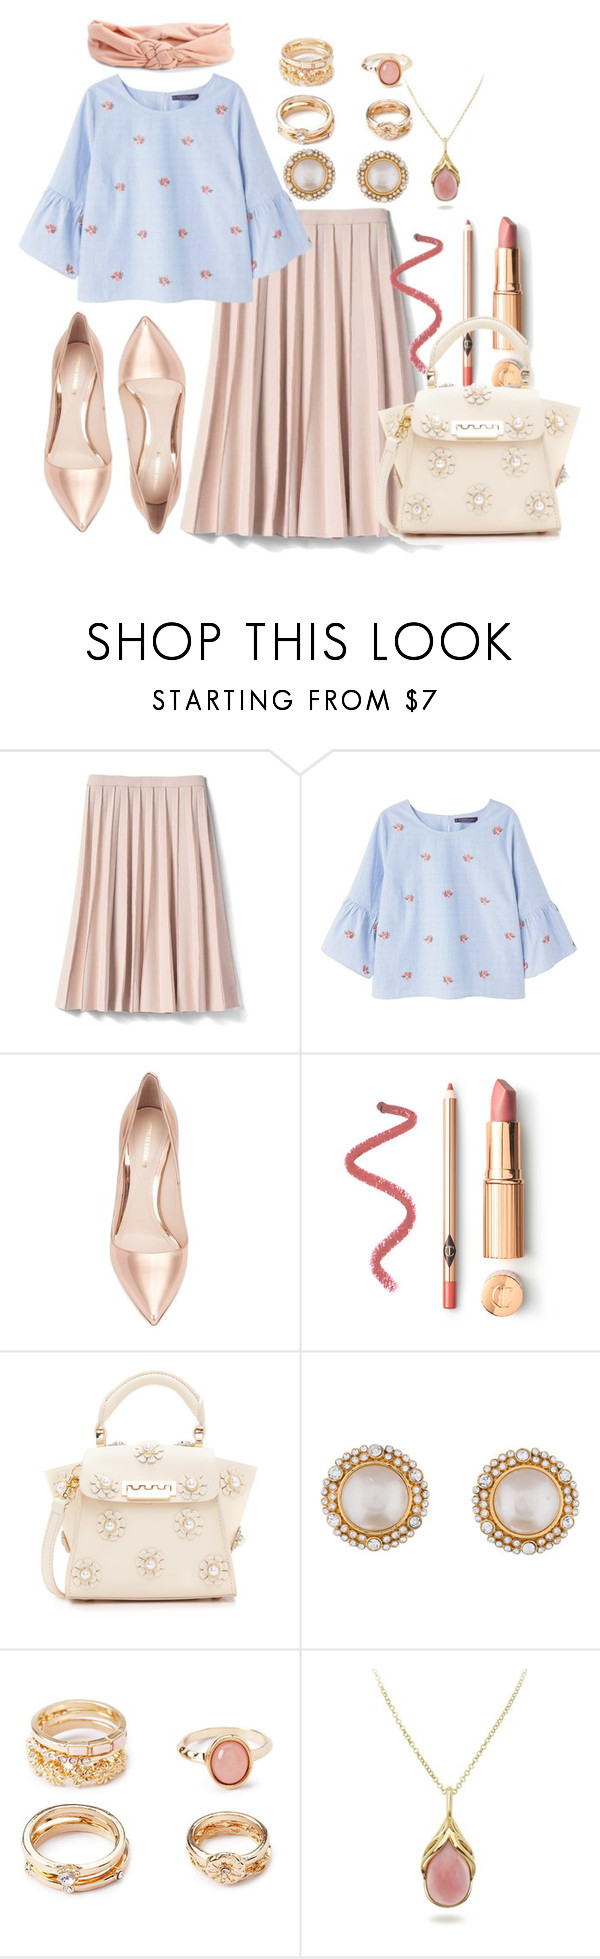 """""""Untitled #1063"""" by soosoali ❤ liked on Polyvore featuring Banana Republic, Violeta by Mango, Nicholas Kirkwood, ZAC Zac Posen, Chanel, Forever 21 and Aéropostale"""